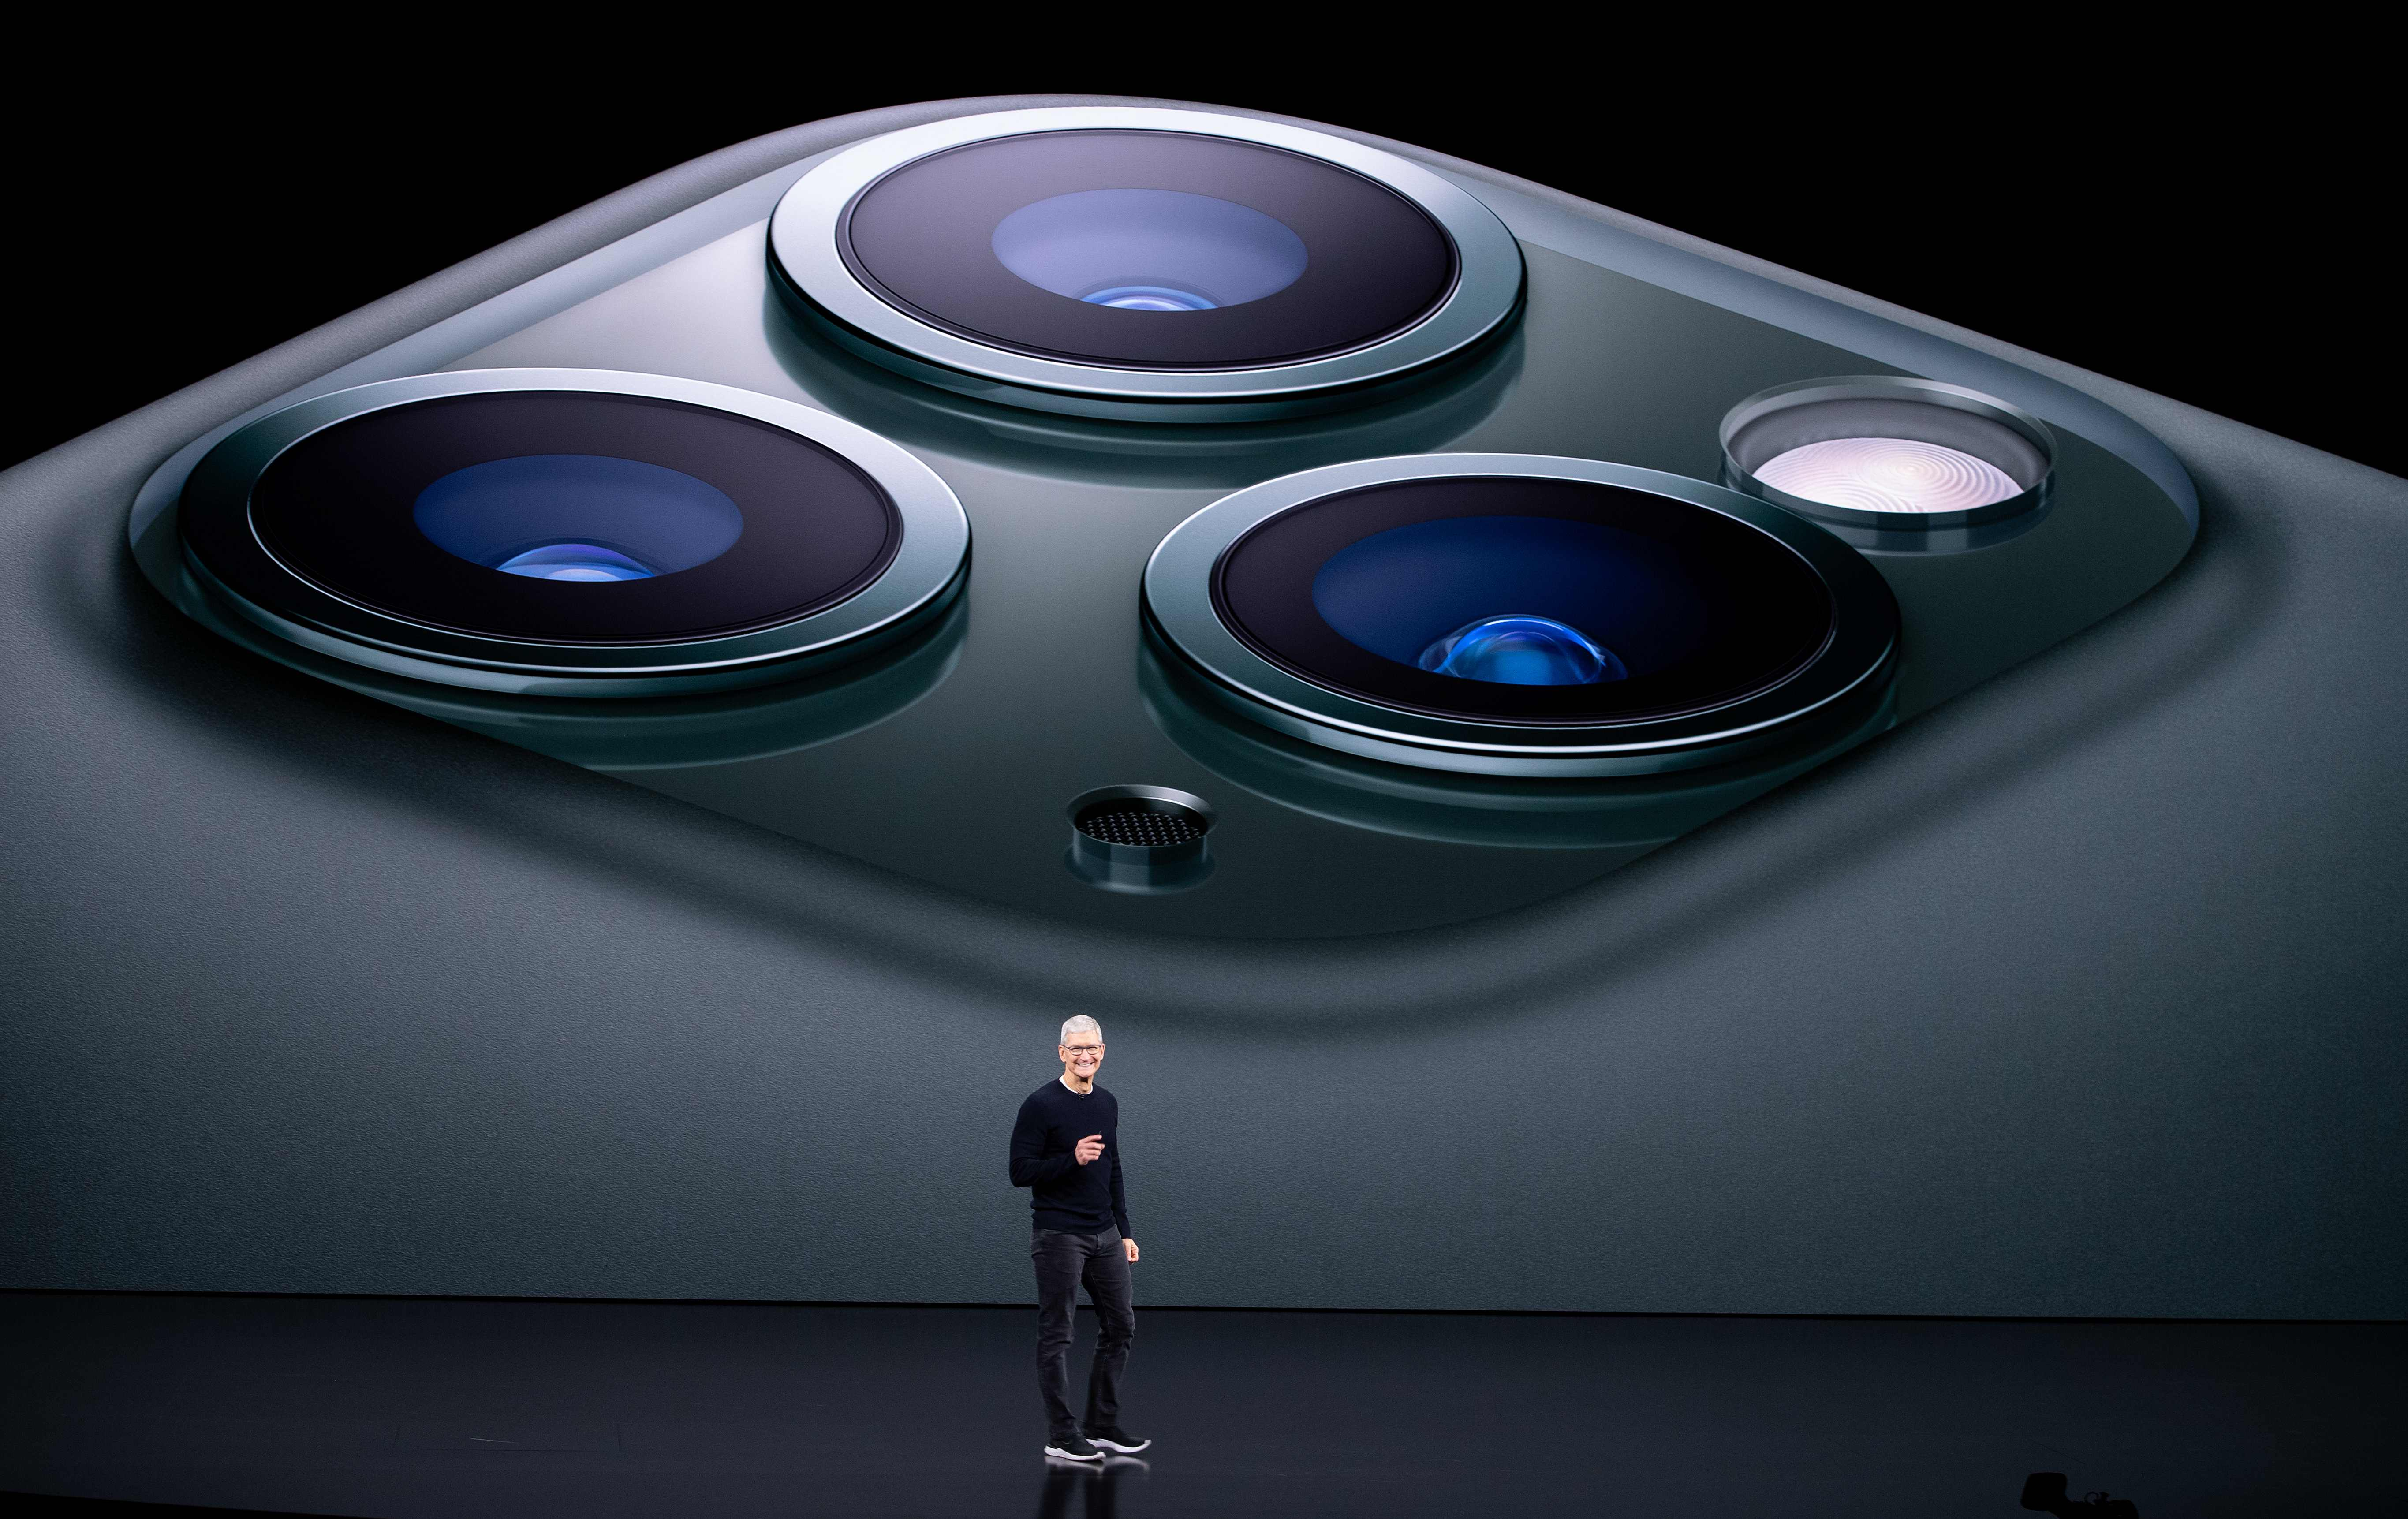 Trypophobia Triggered By Iphone S Three Lenses Sufferers Say